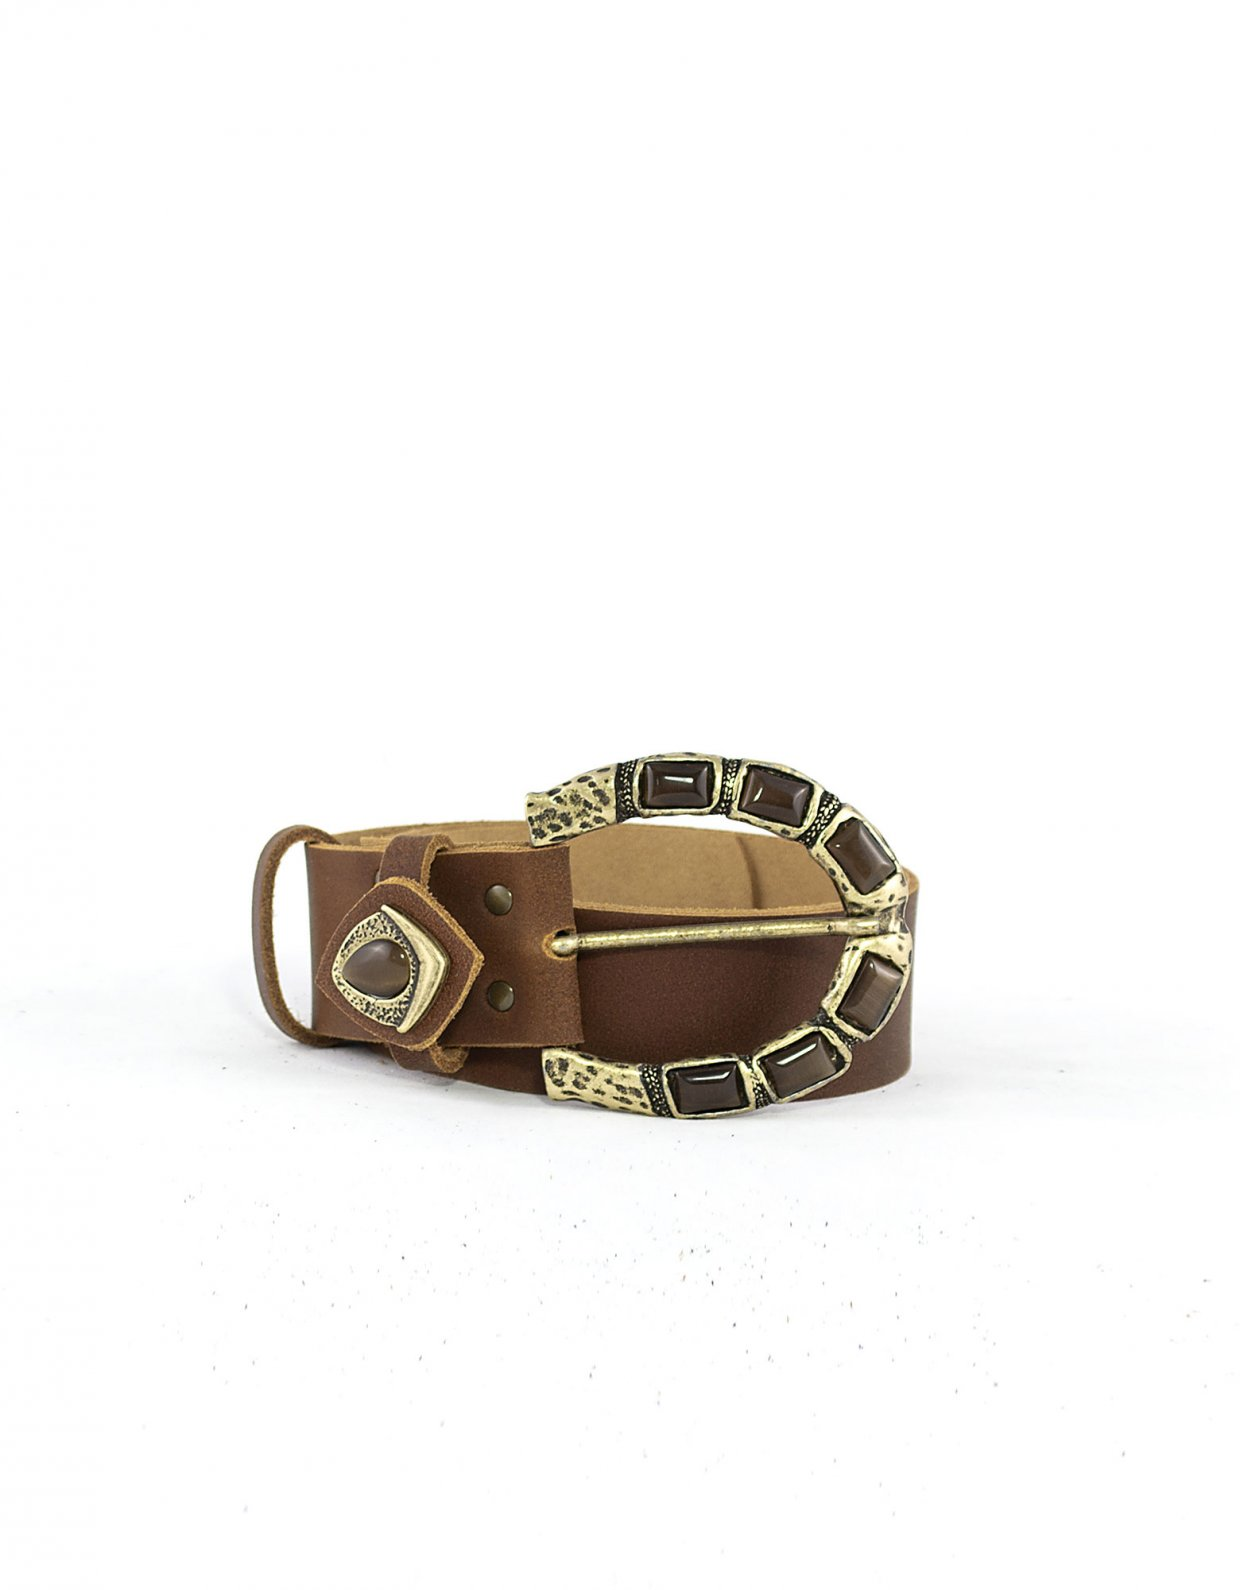 Peace & Chaos Moonstone belt tanned